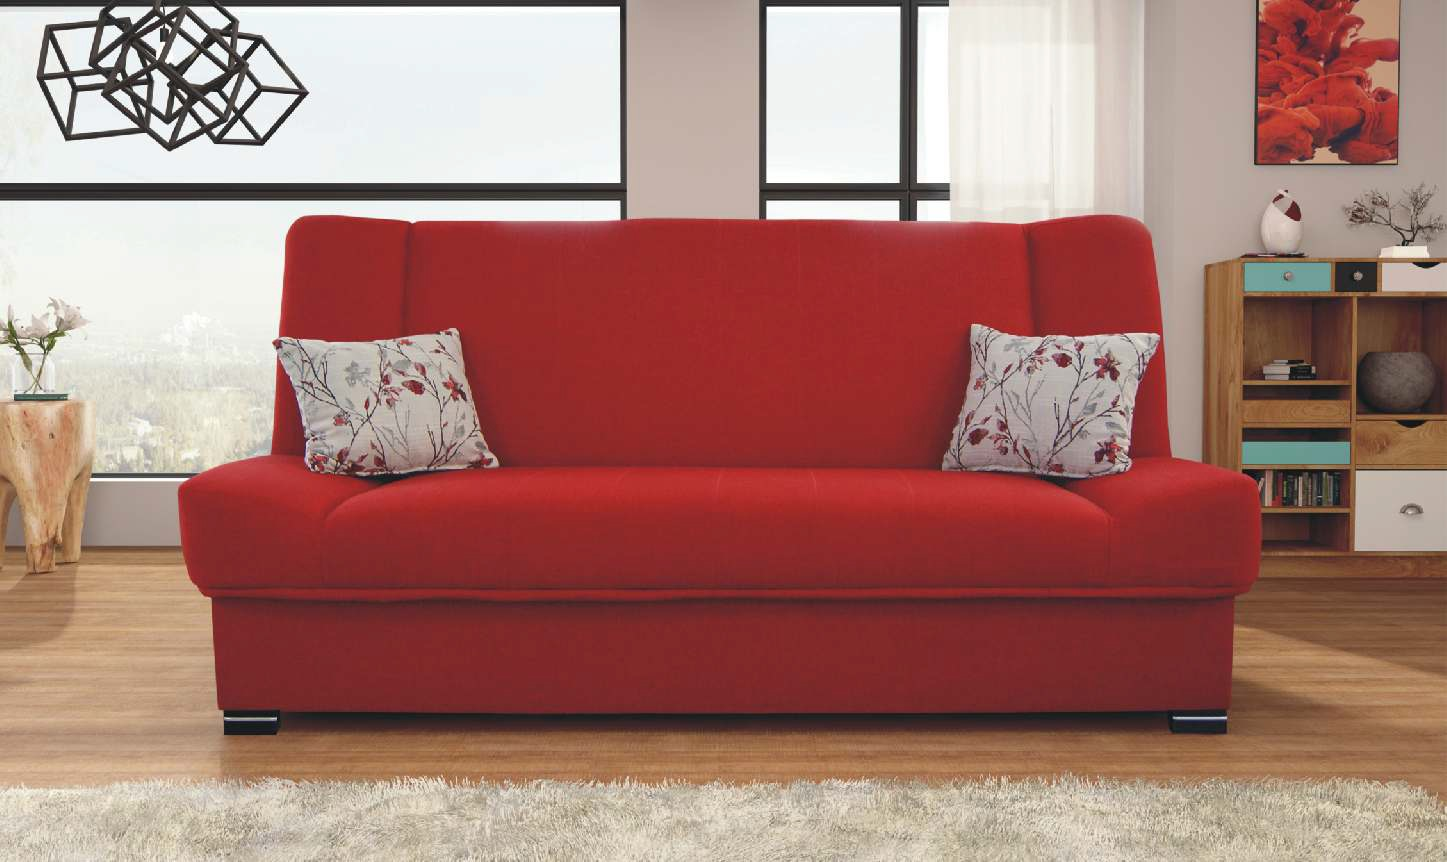 Red Furniture Ideas Natalia Red Sofa Sleeper By Skyler Designs